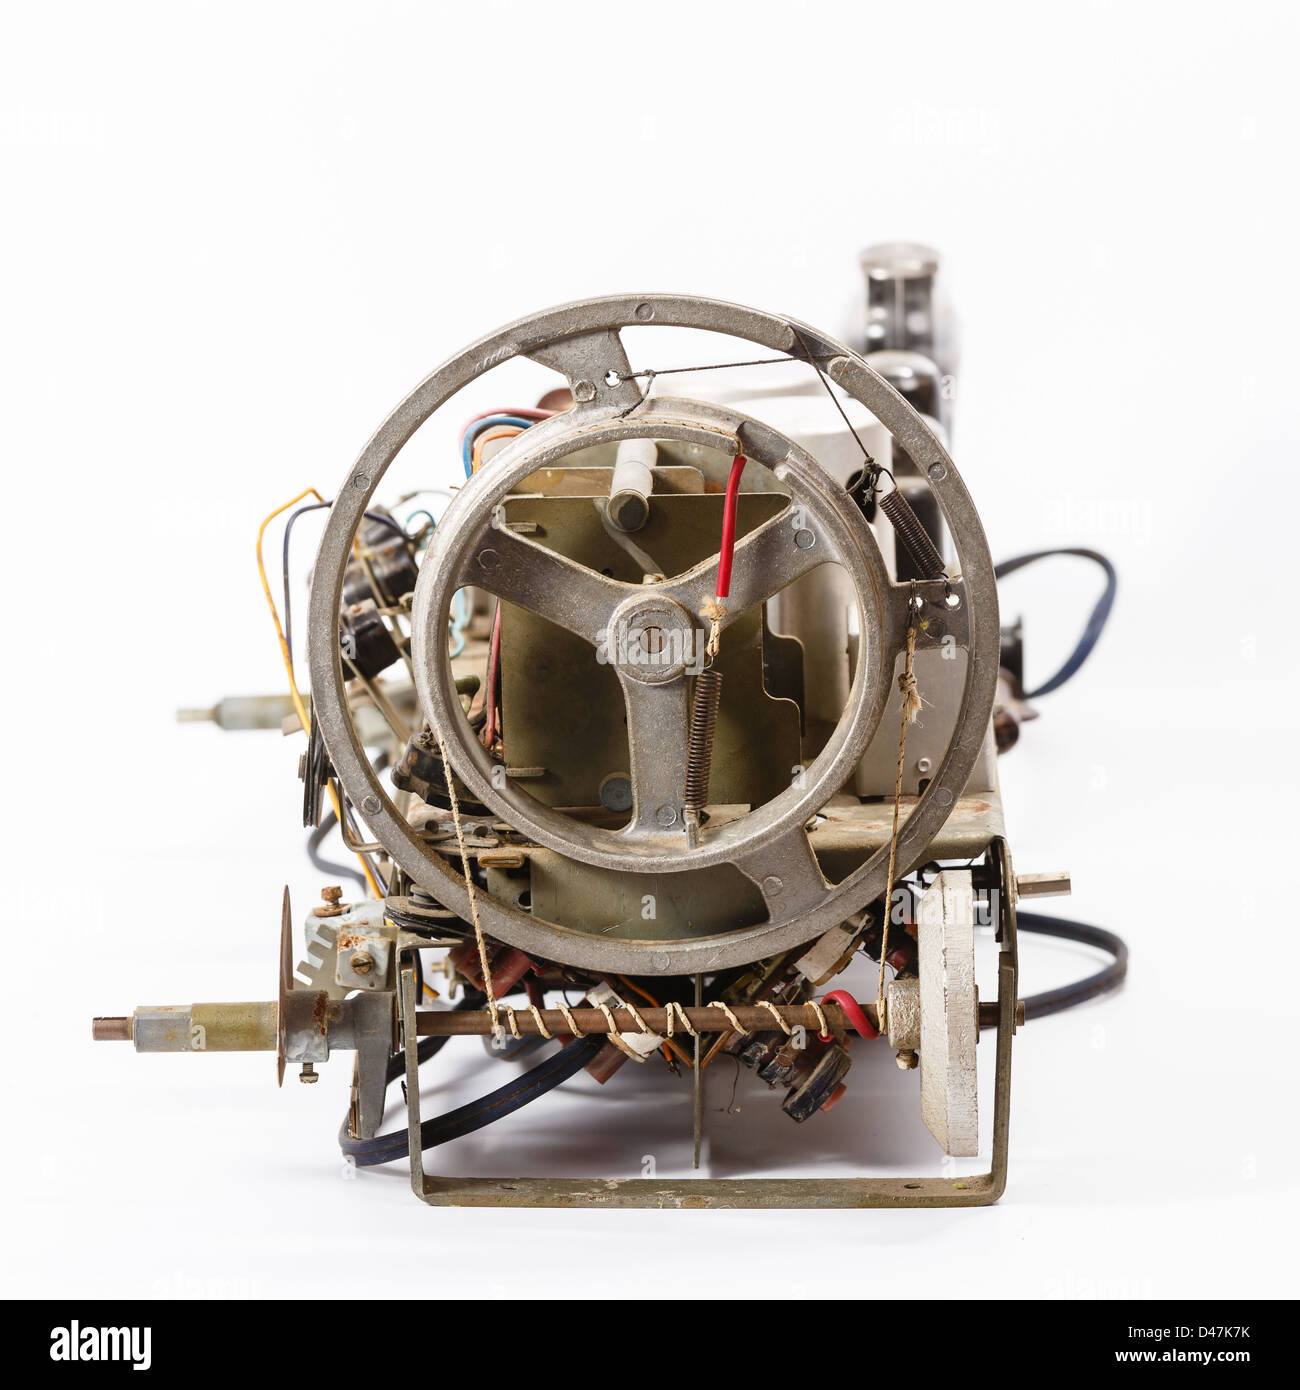 device of tuning of an old lamp radio receiver - Stock Image